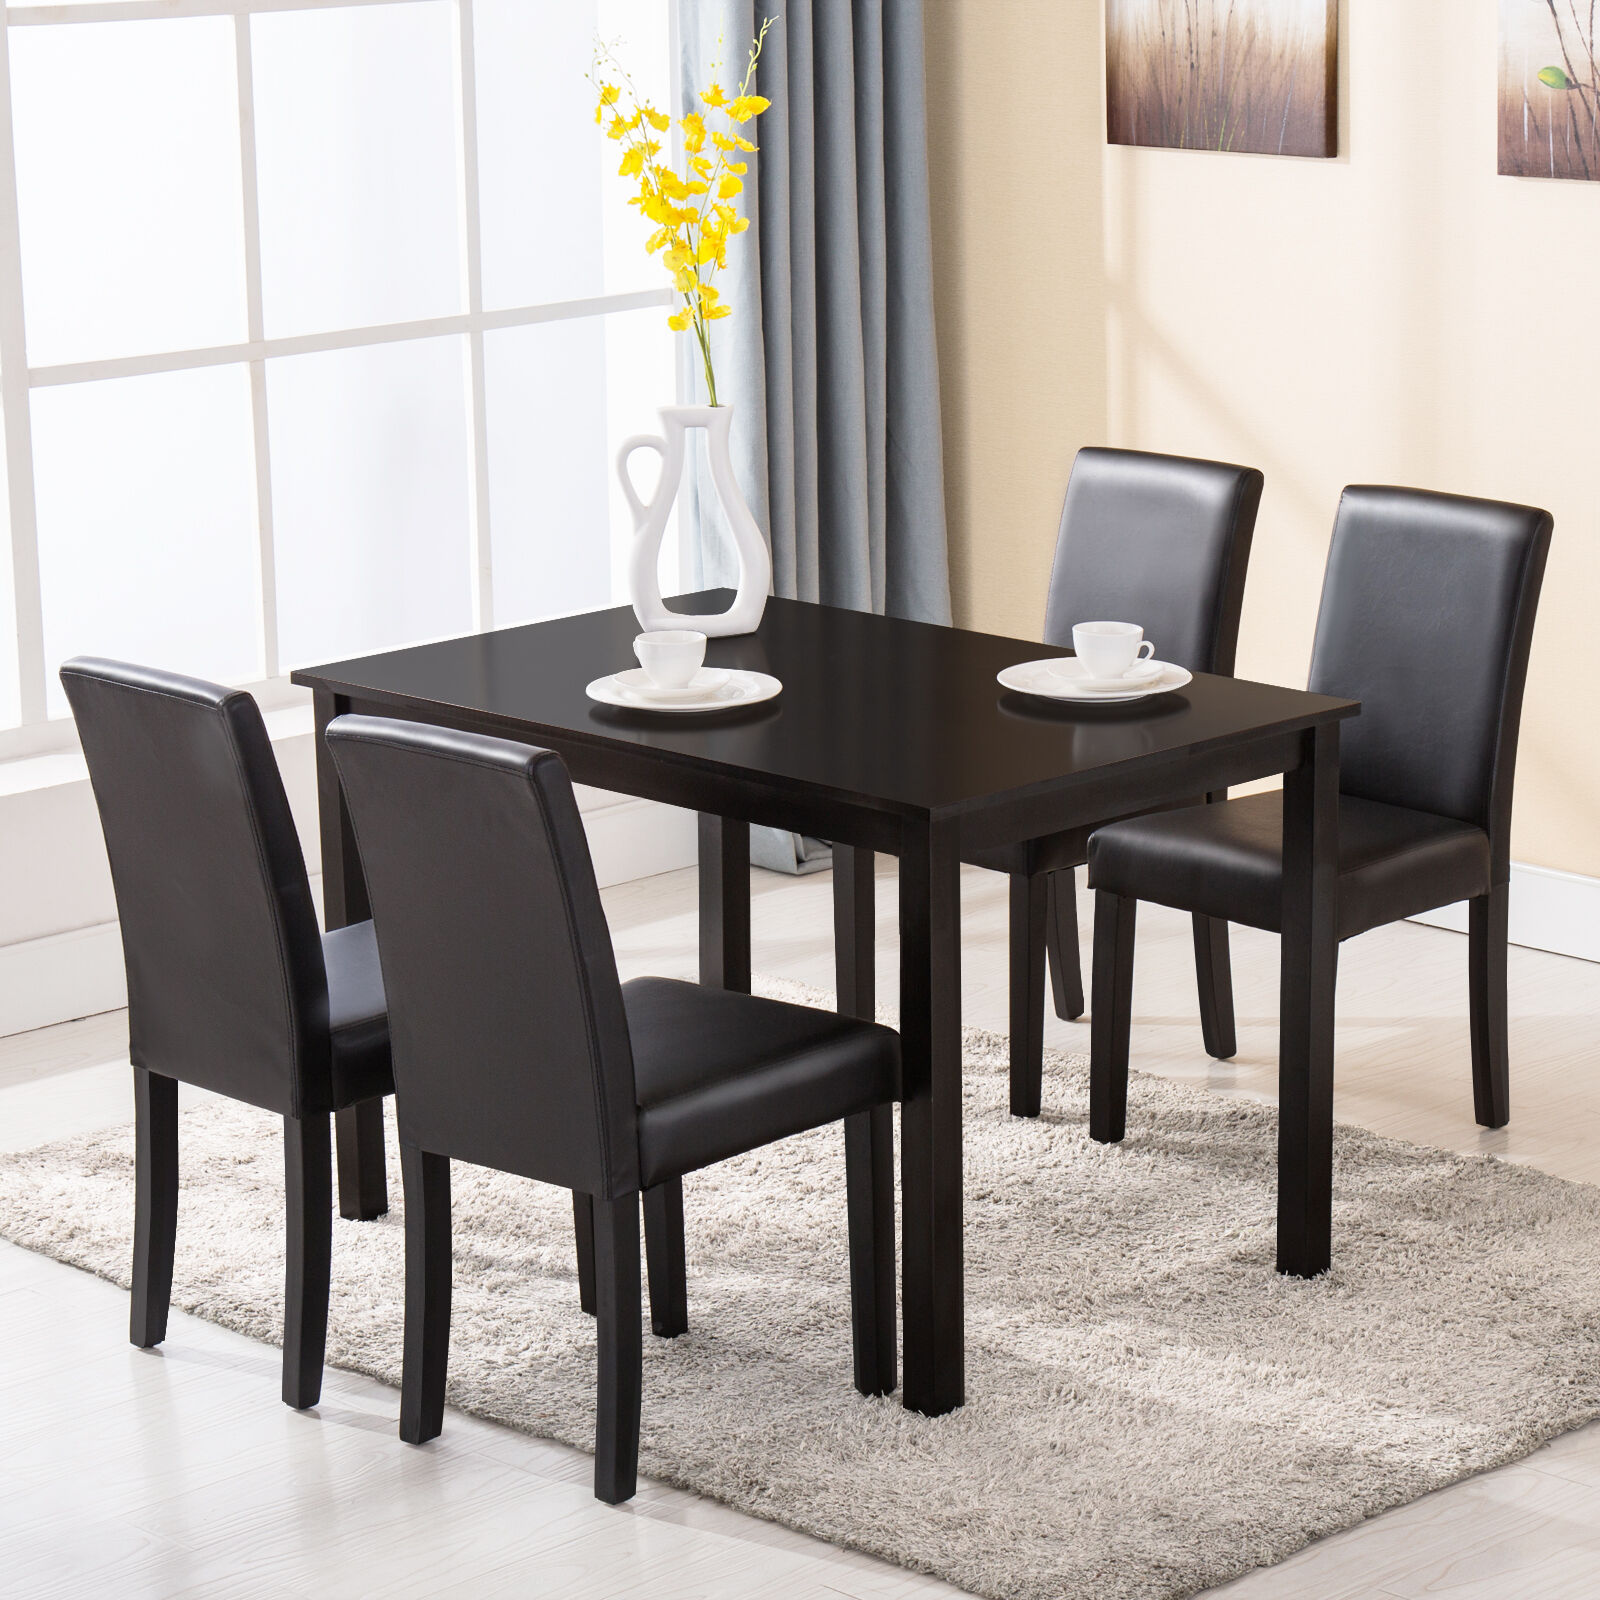 Dining Kitchen Table Sets: 5 Piece Dining Table Set 4 Chairs Wood Kitchen Dinette